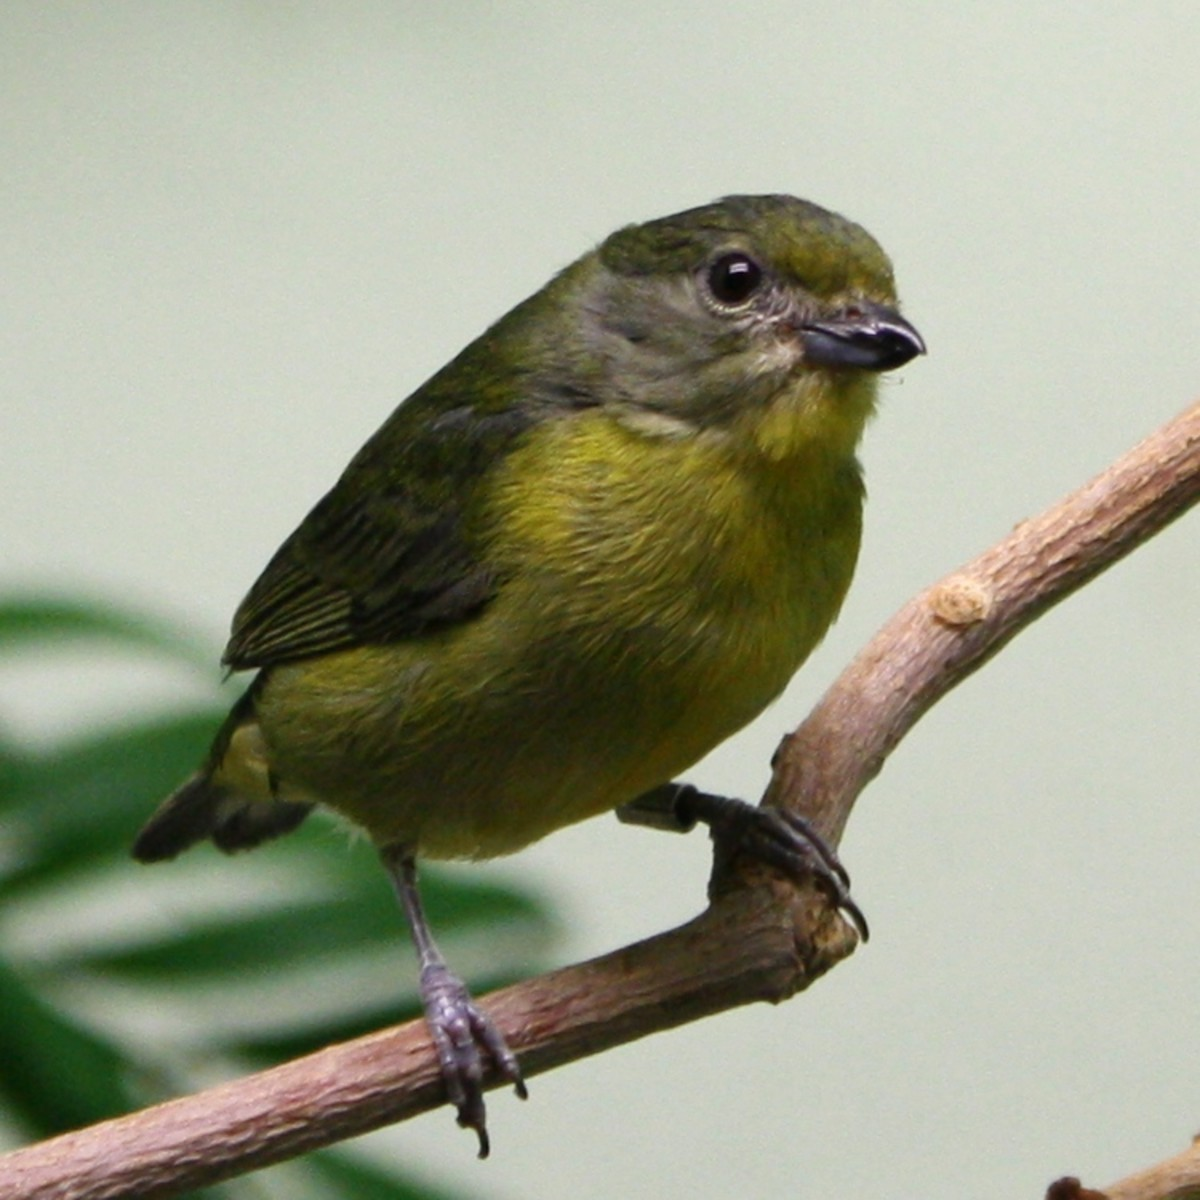 This is such a cute bird. It is a yellow violaceous euphonia bird.